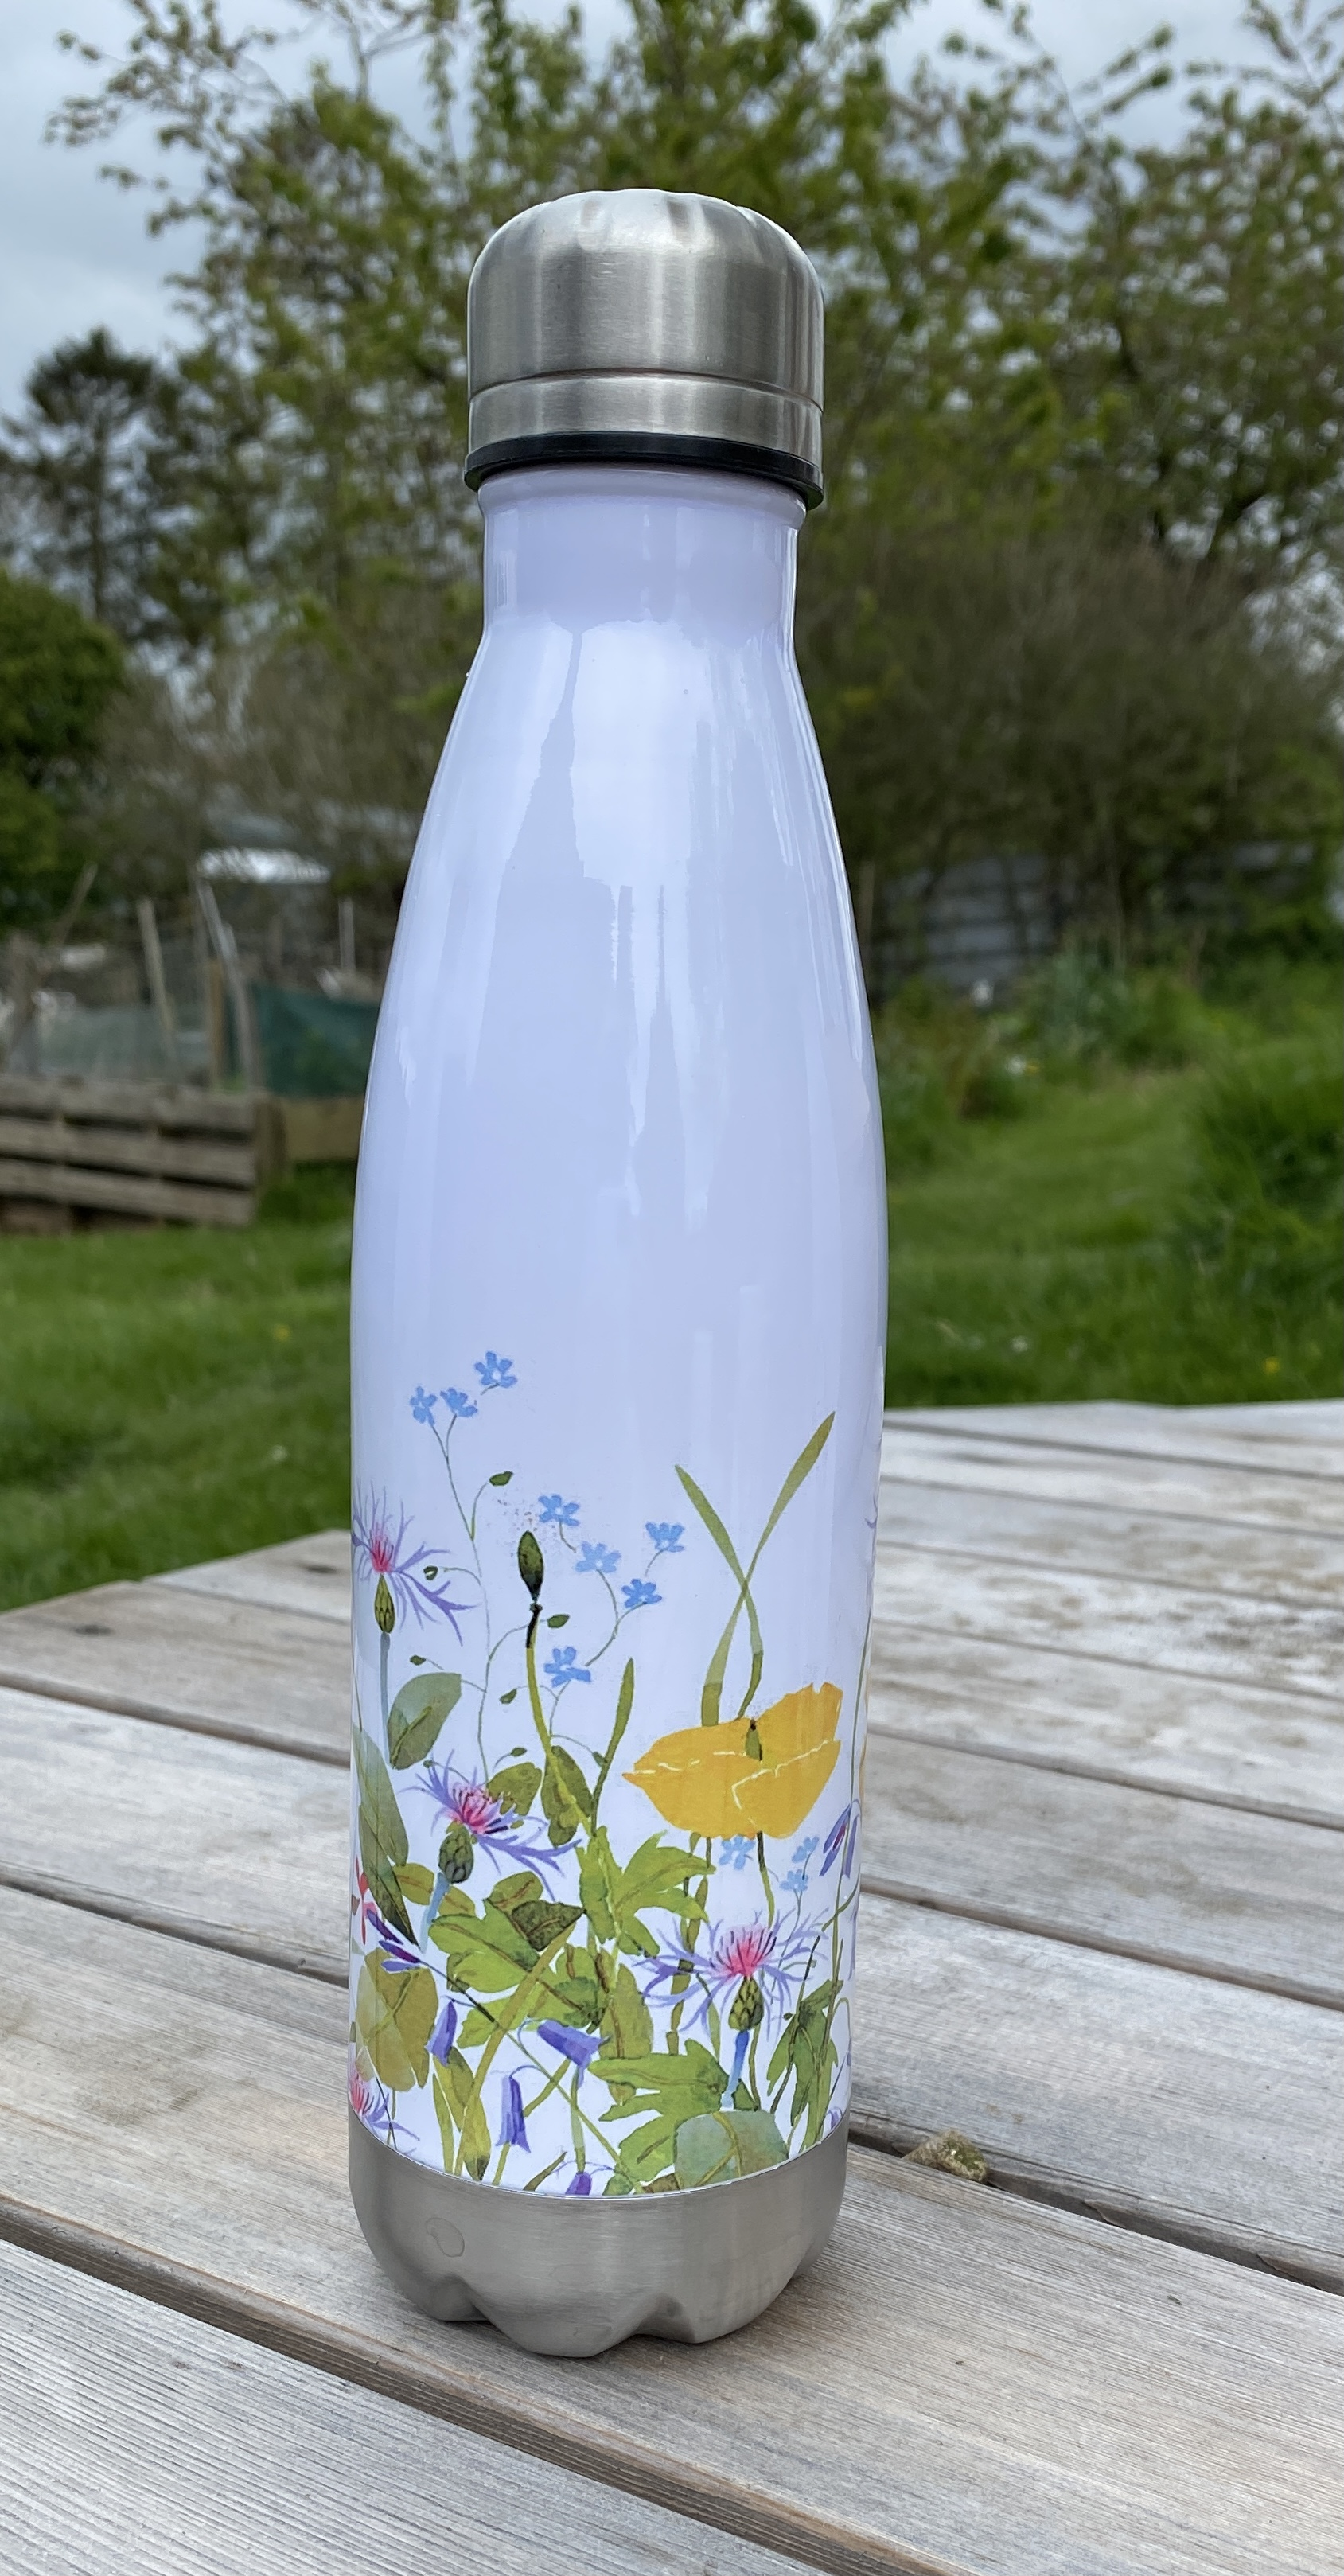 Stainless Steel Drinking Bottle - Spring Flowers image